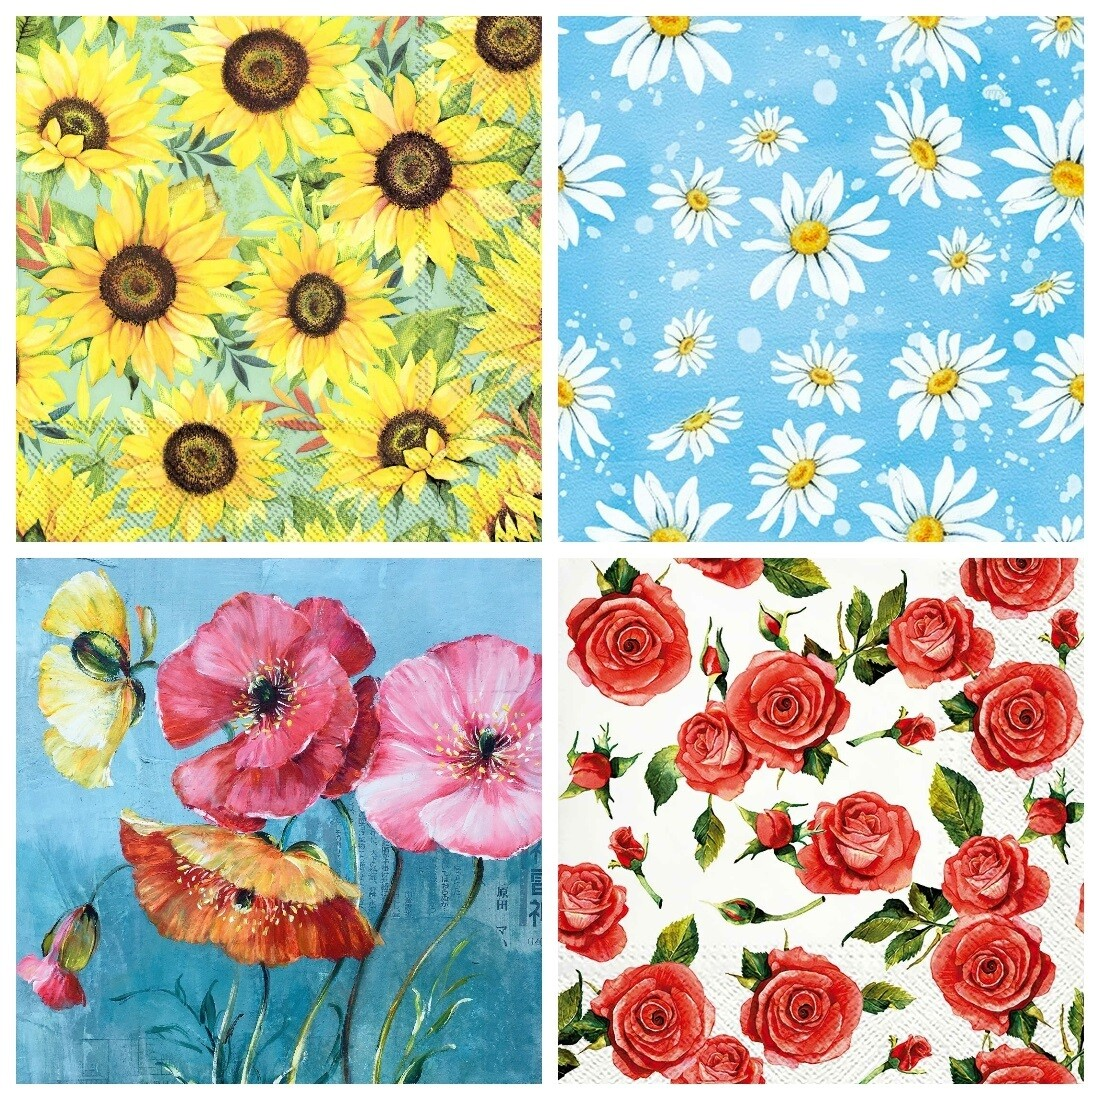 Decoupage Paper Napkins - Floral 28 - Mixed Flowers (4 Sheets)